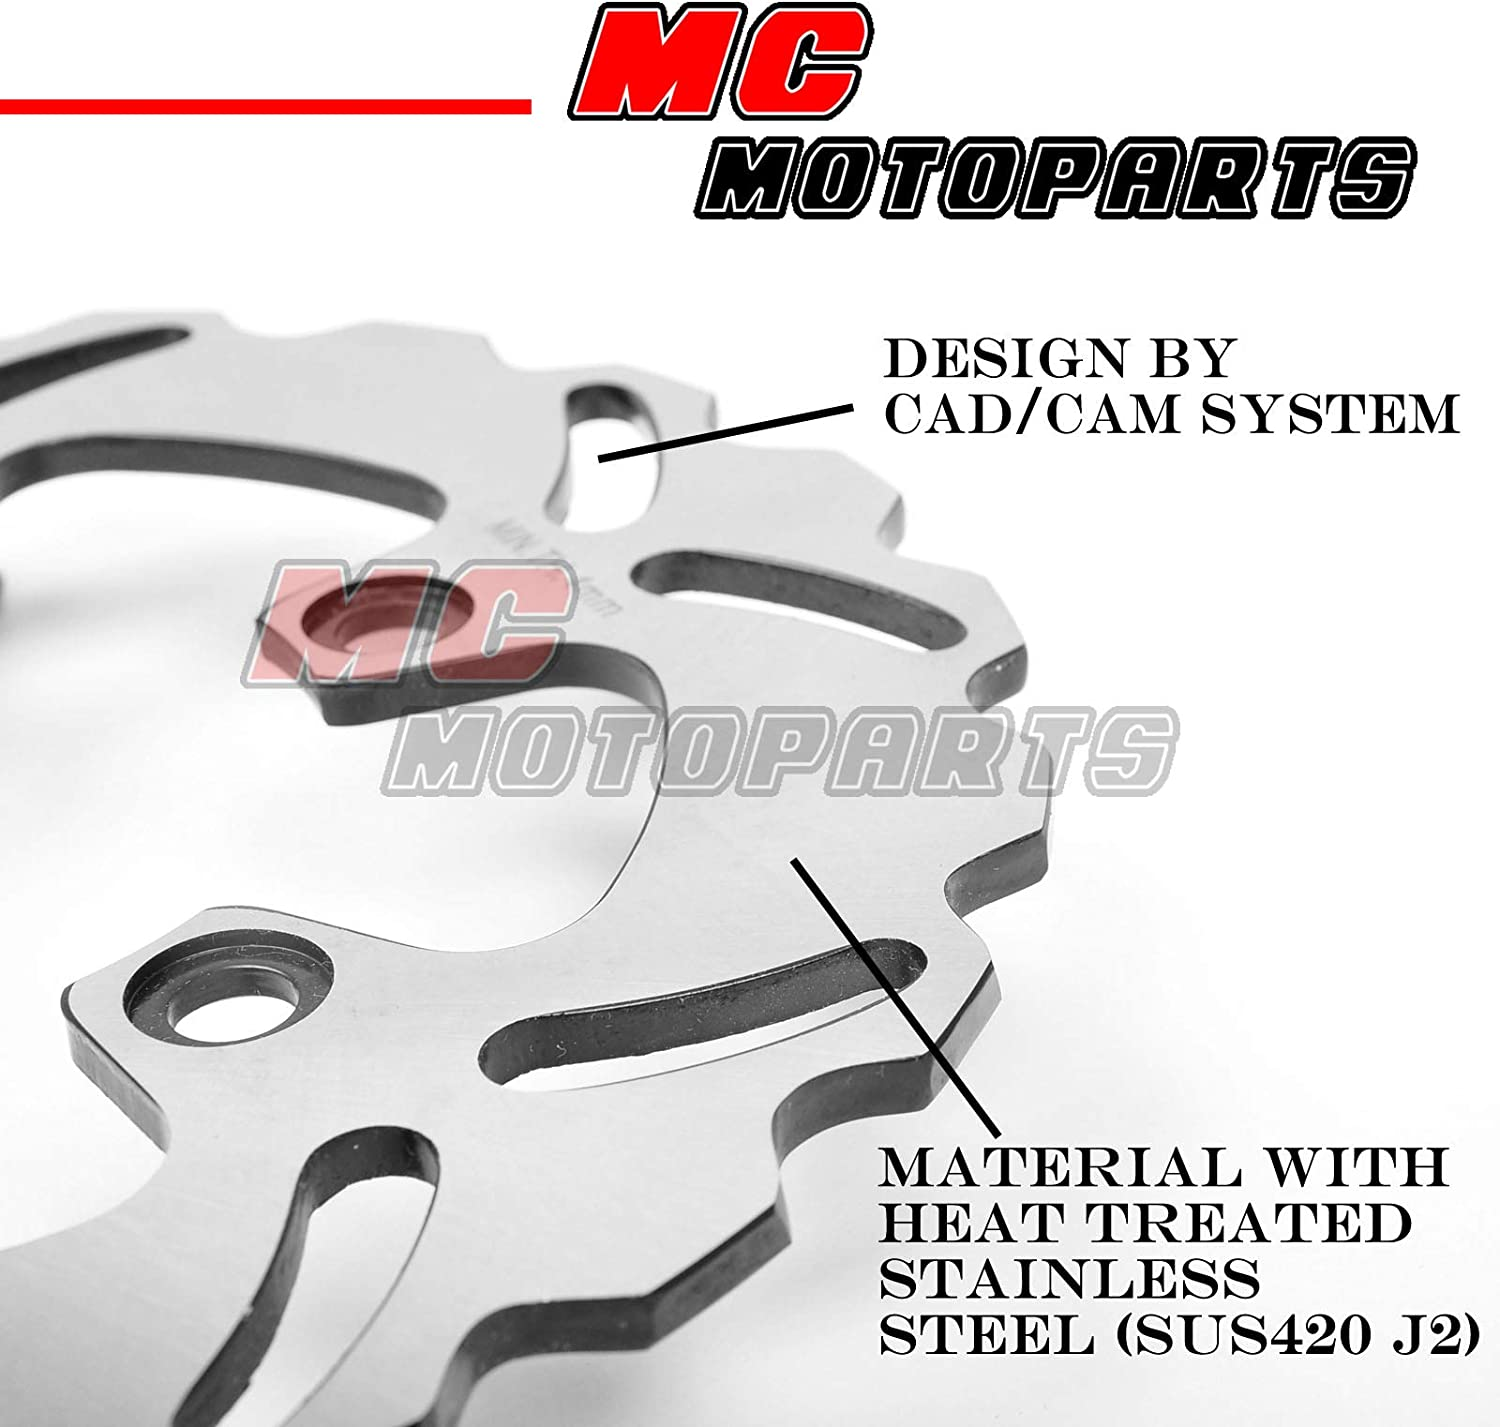 MC MOTOPARTS Rear Brake Disc Rotor 1 Piece For Honda CBR 900RR 1992-1999 93 94 95 96 97 98 99